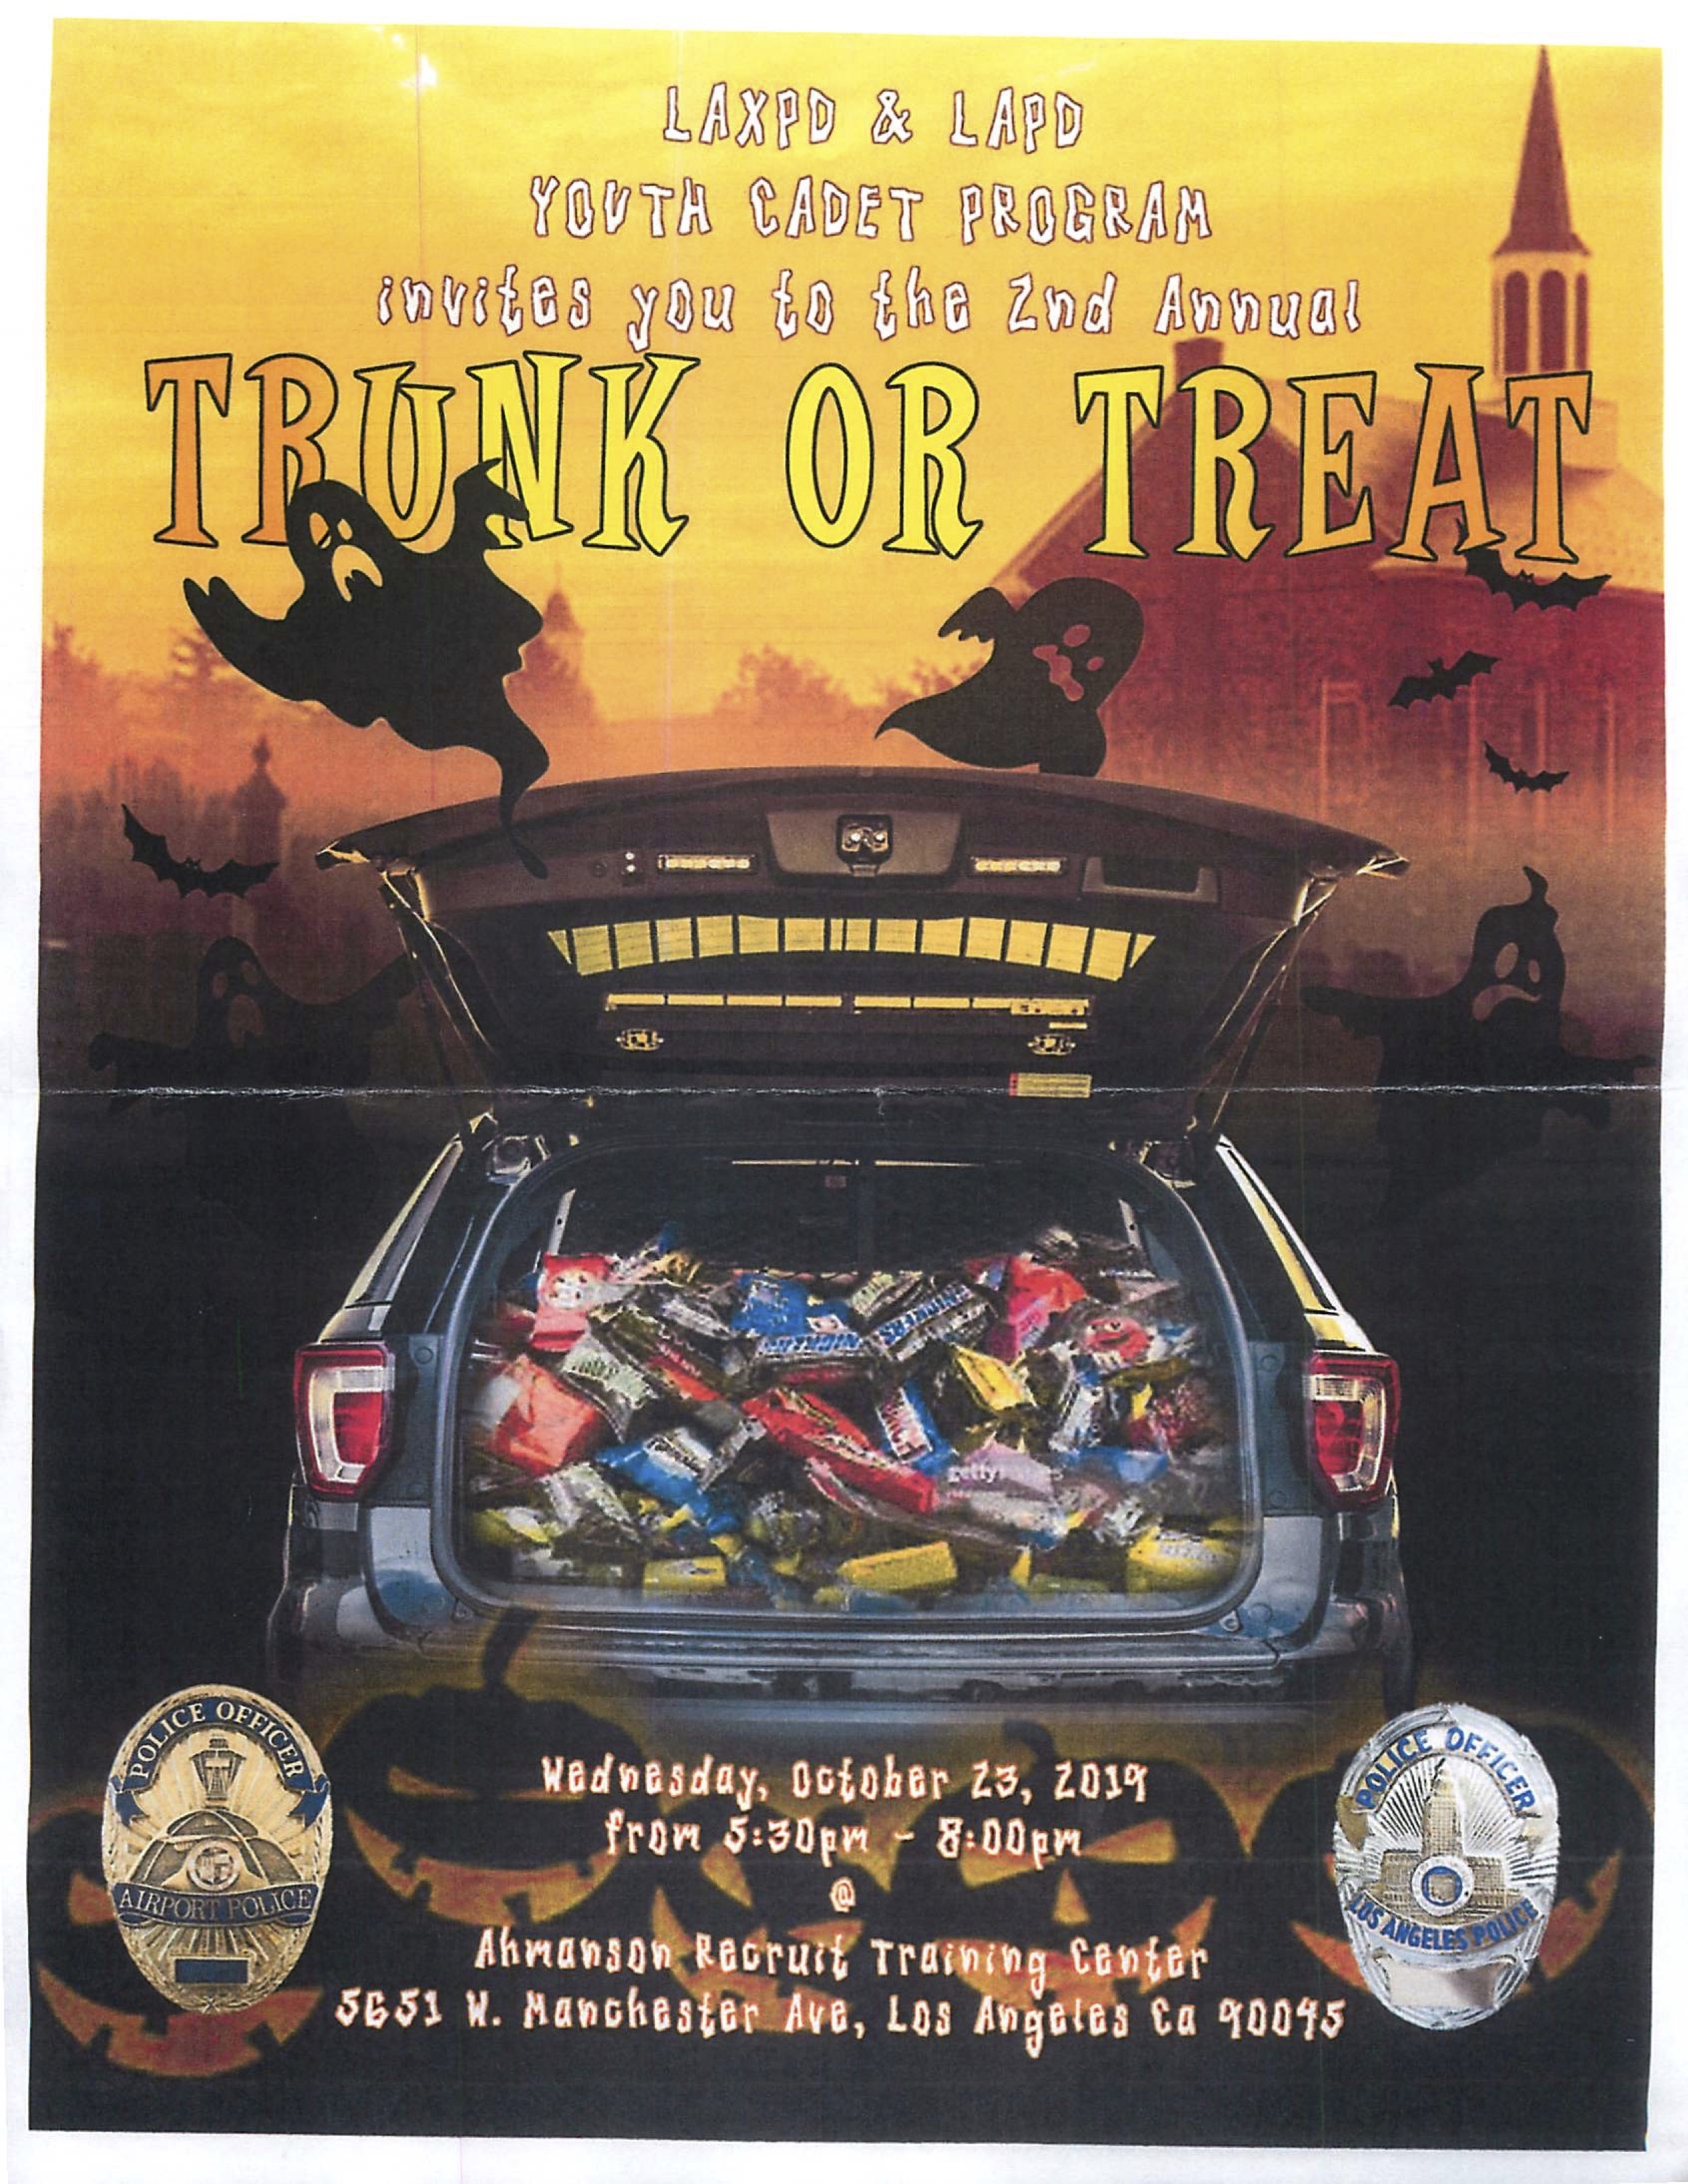 Trunk or Treat Flyer (10-23-19) copy